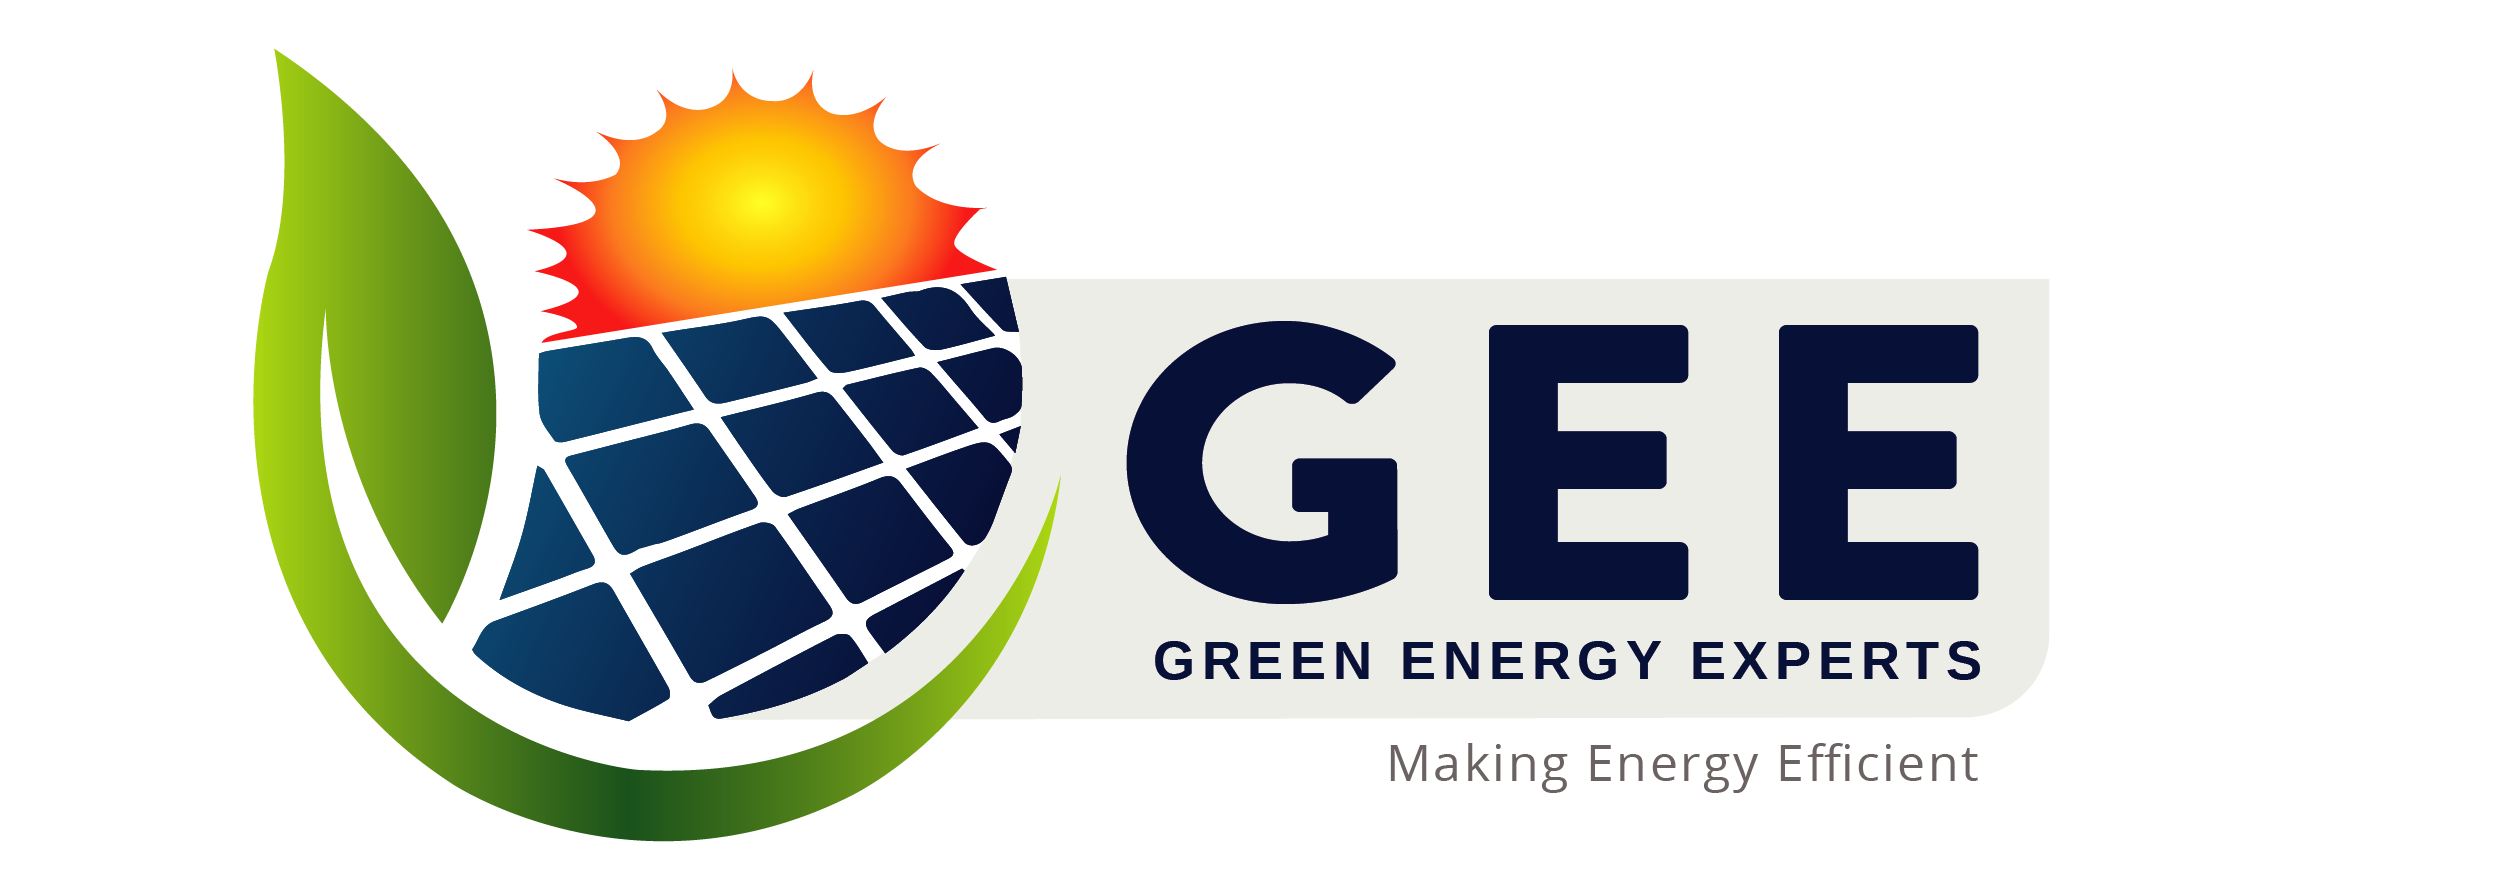 Green Energy Experts